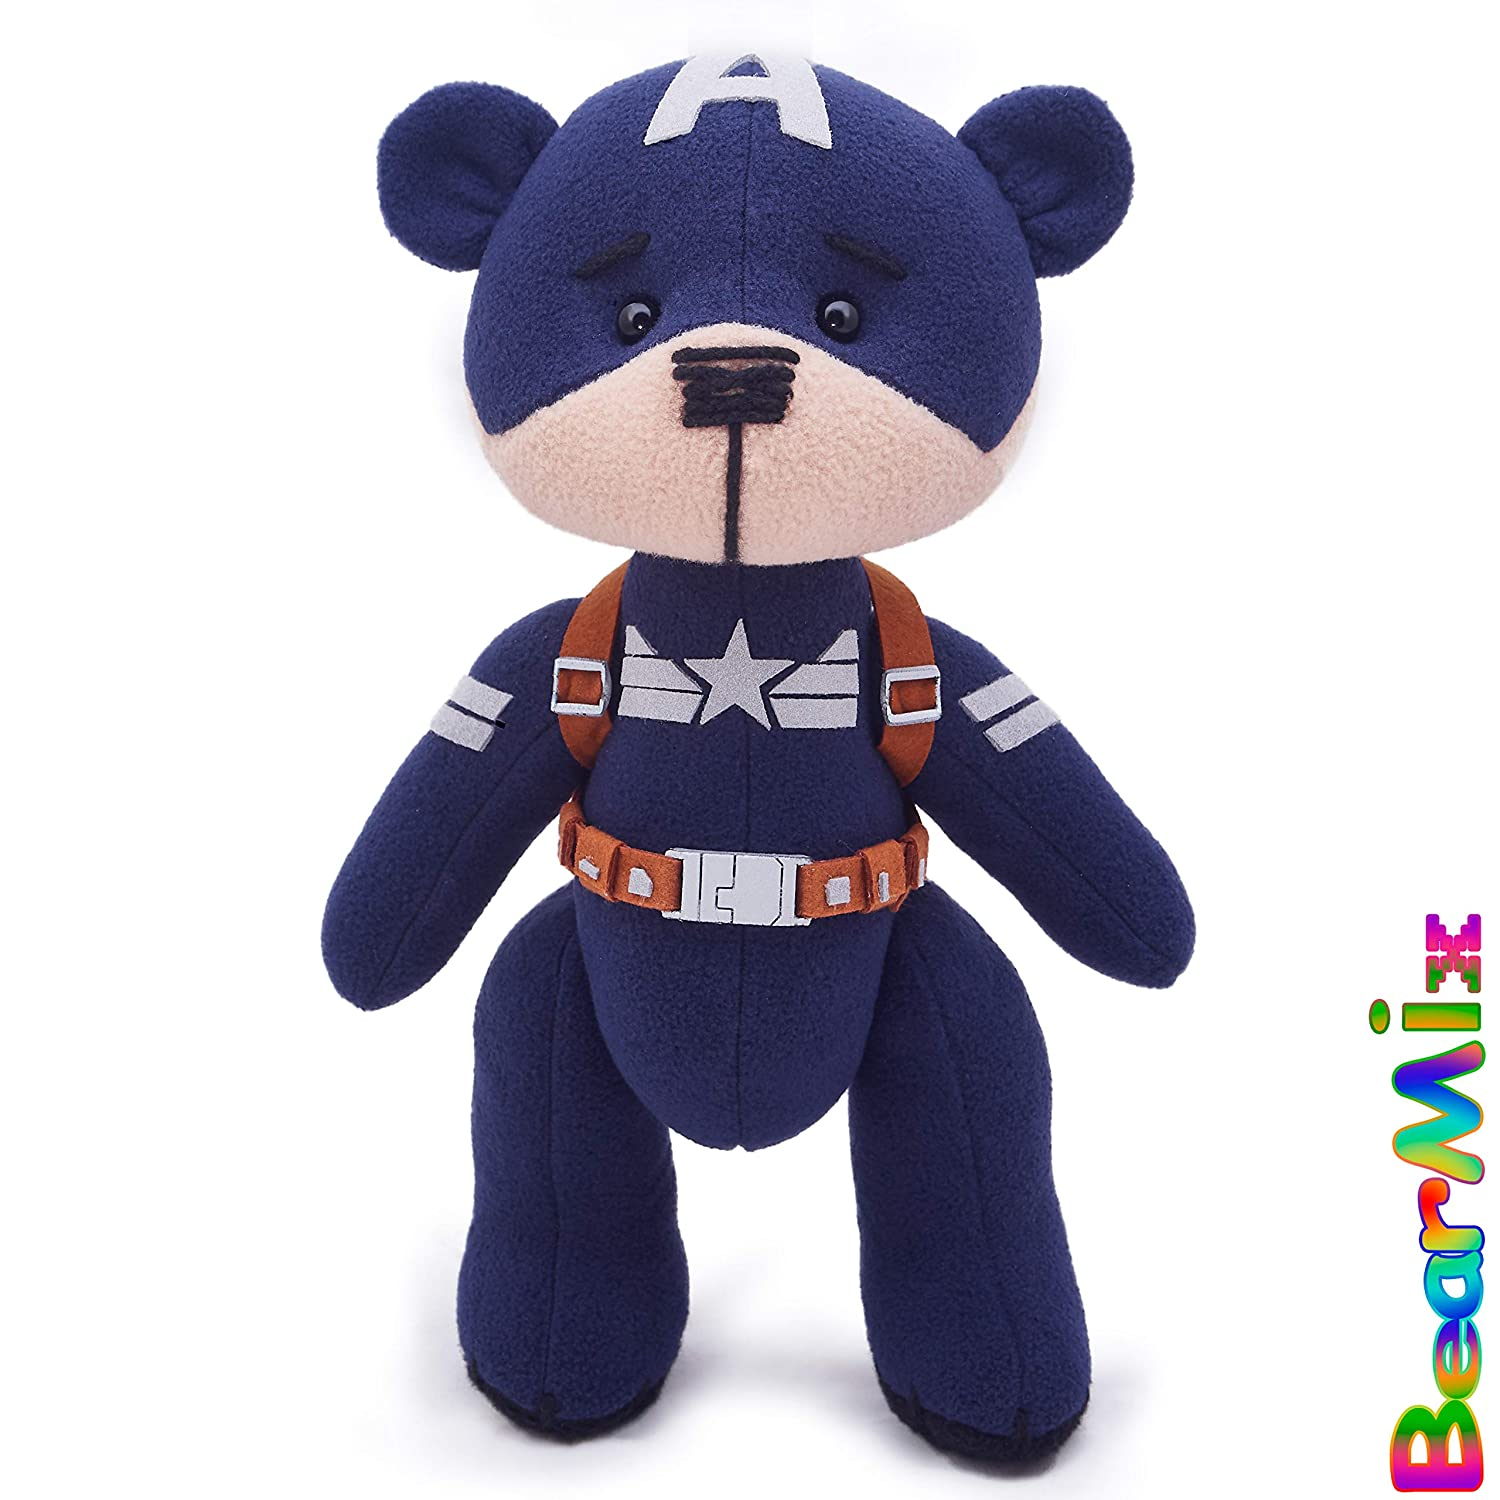 Captain America bear 'Stealth suit' - marvel superhero movie comic plush toy avengers steve rogers